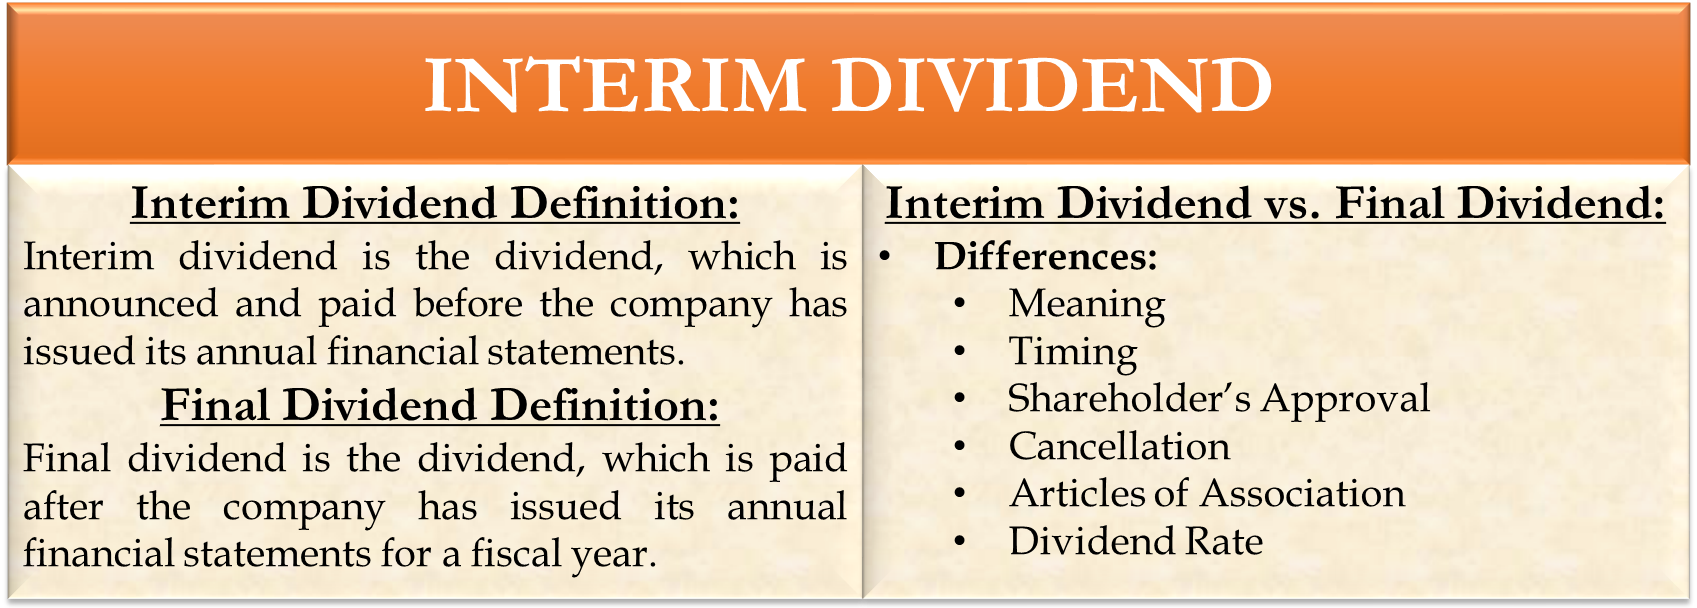 dividend decisions | define, objective, good policy, types - efm